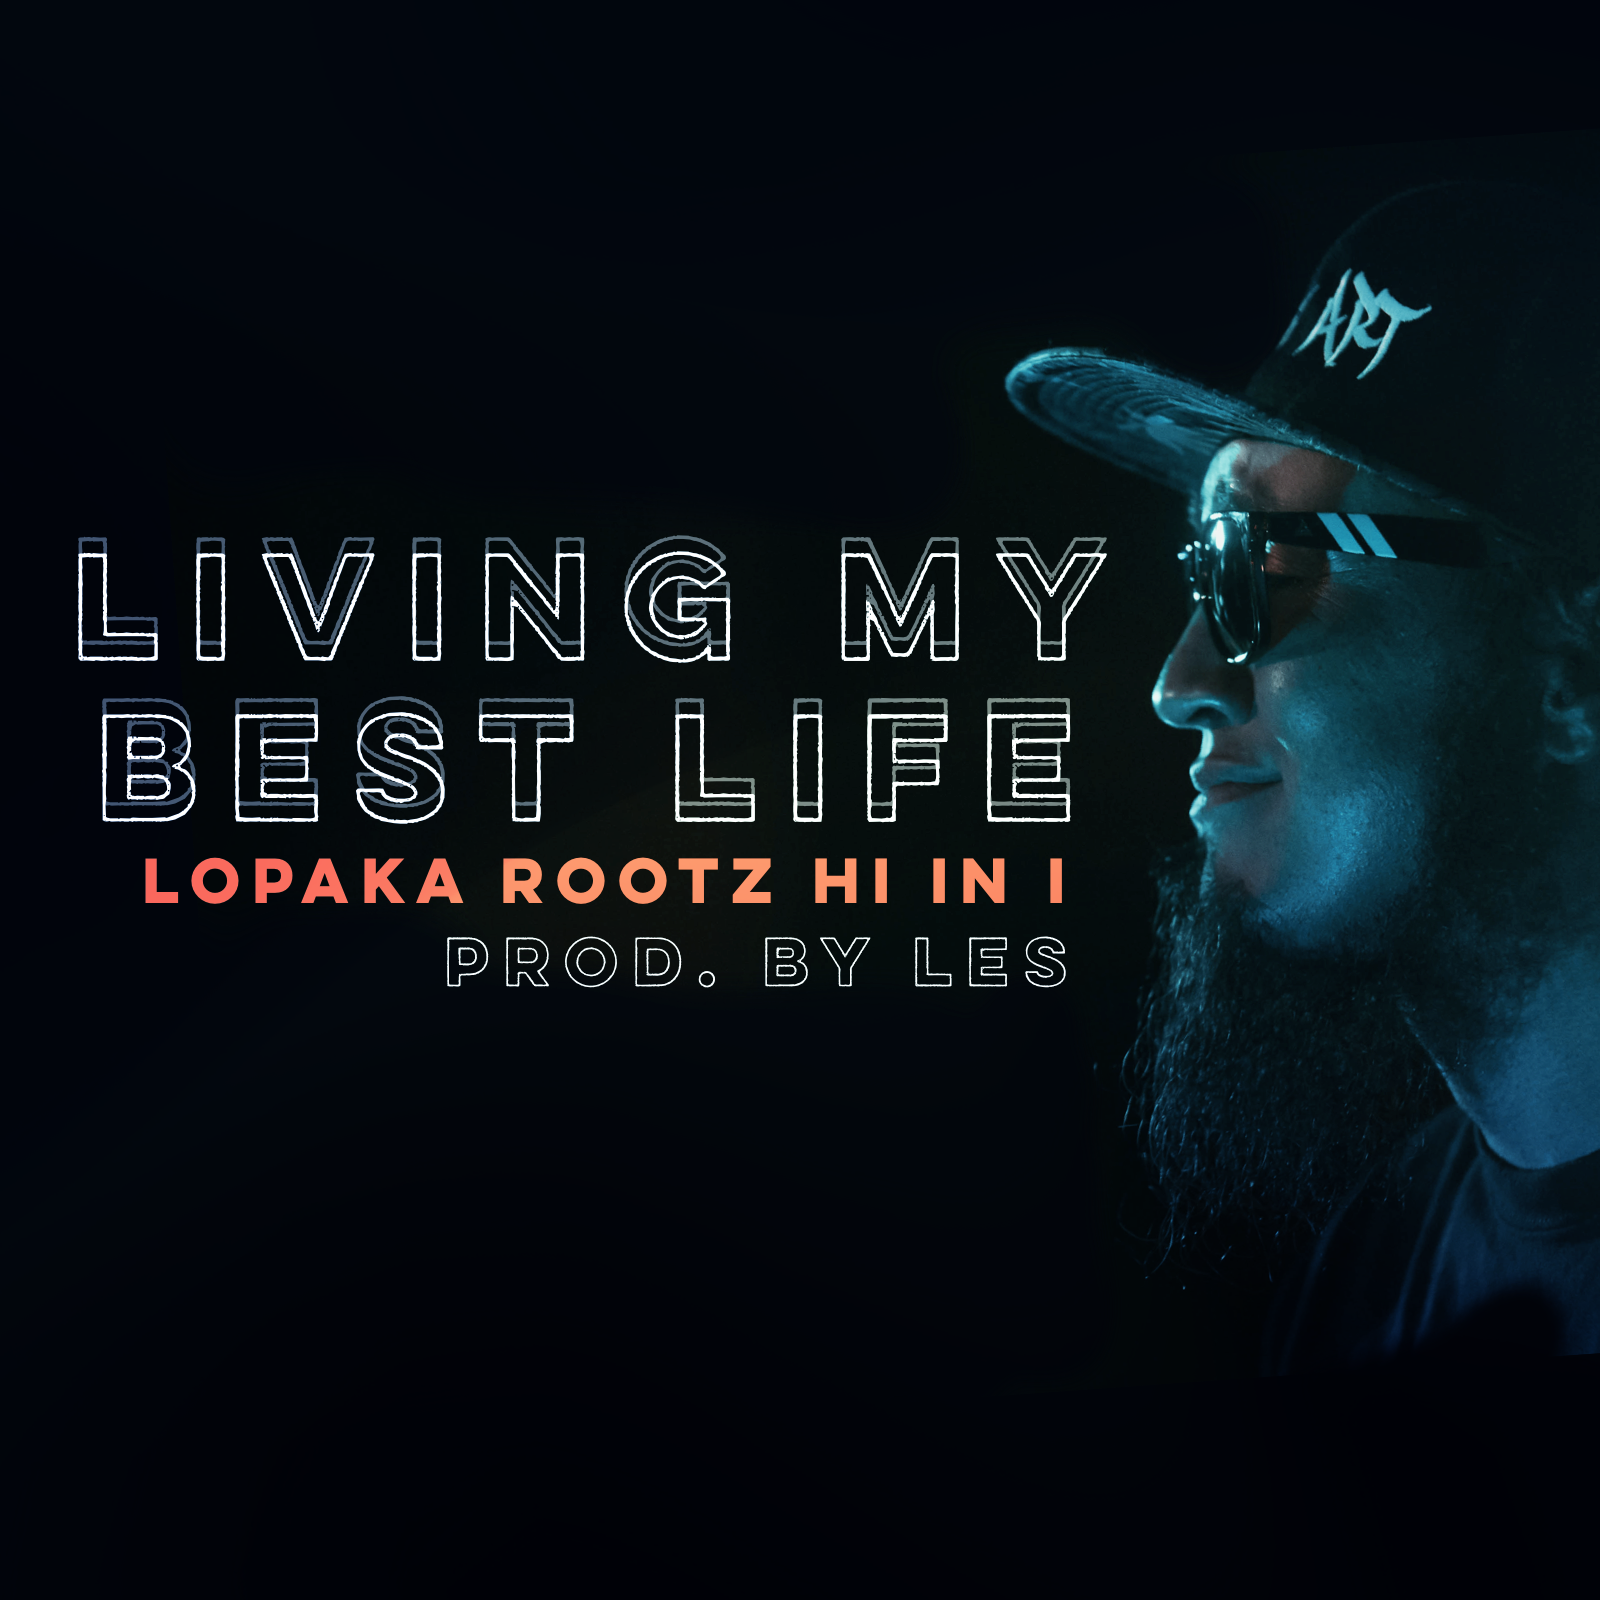 Living My Best Life -Lopaka Rootz Hi In I